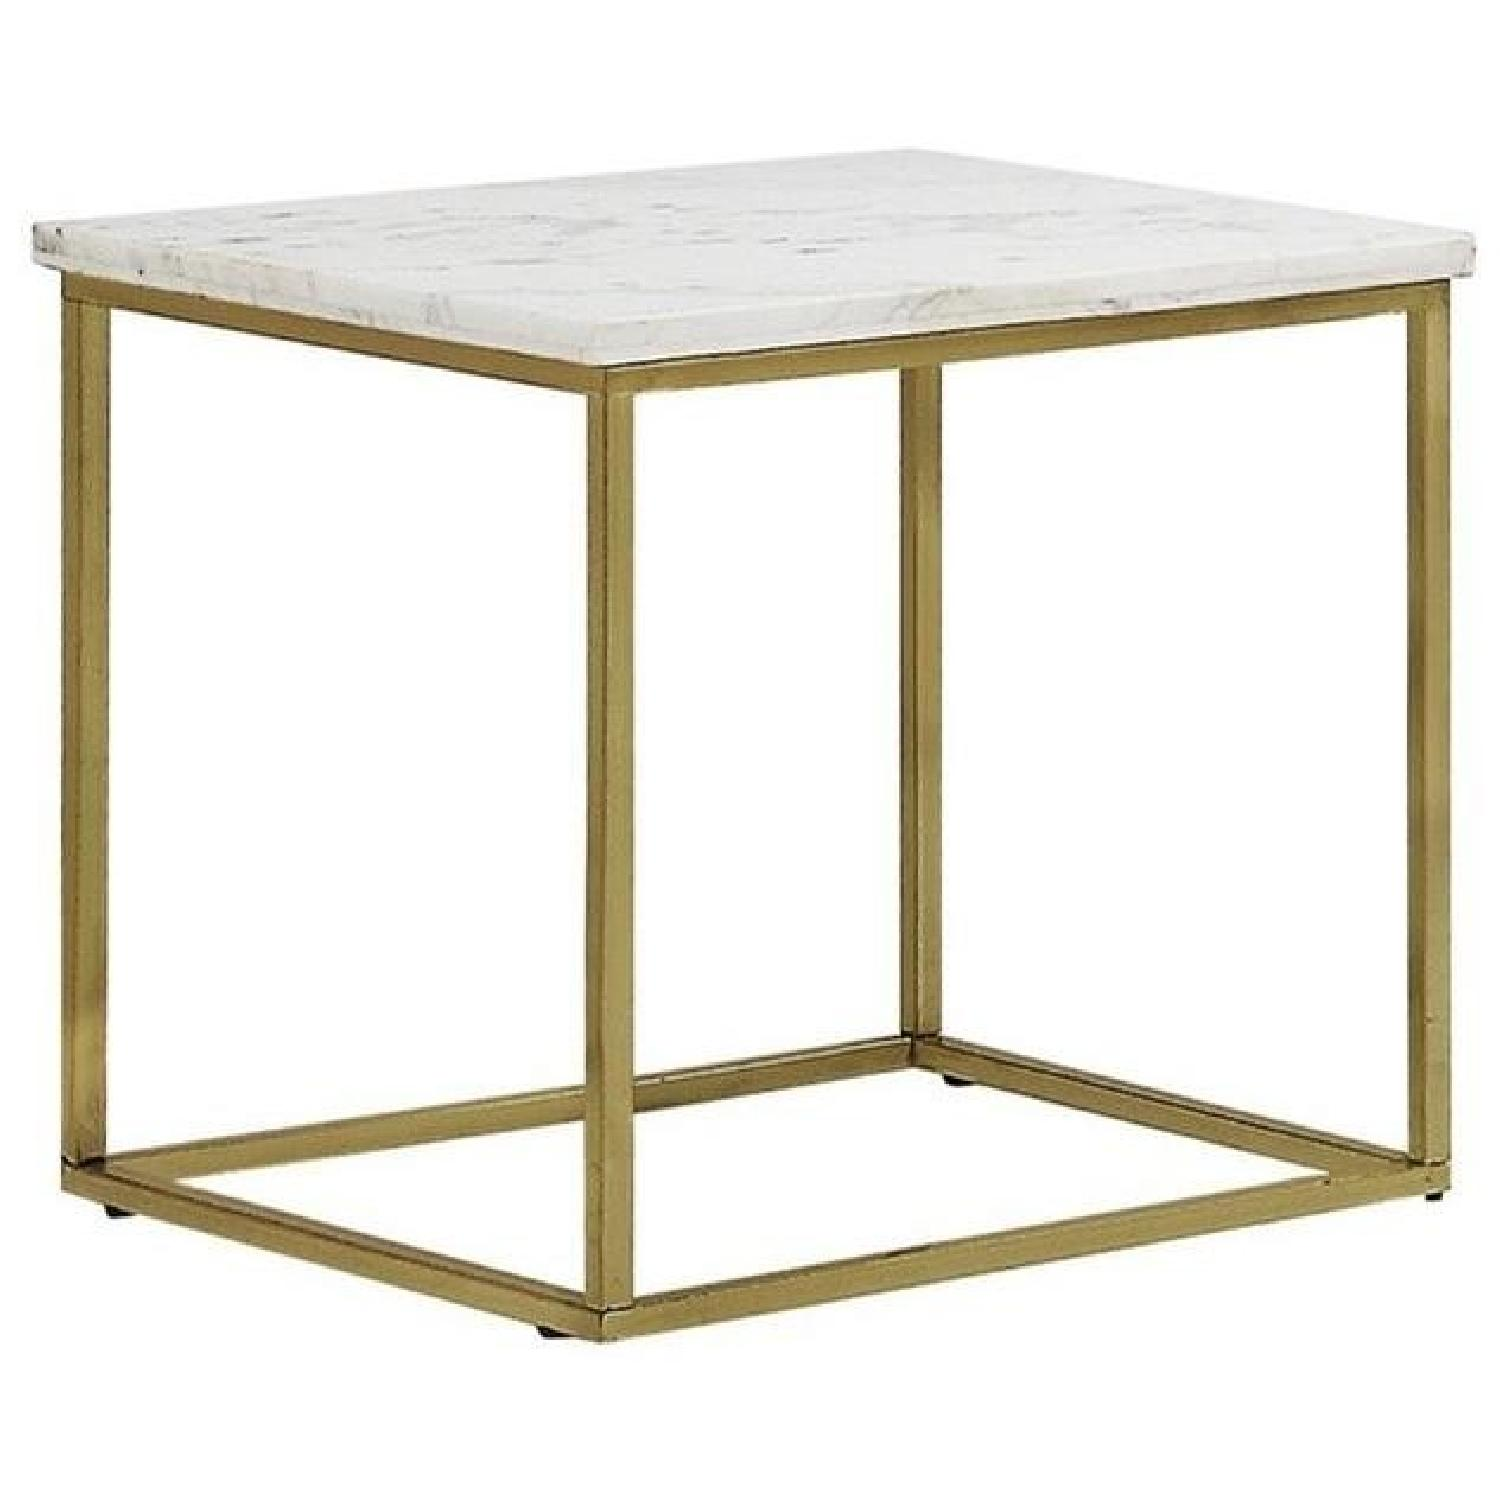 Modern White Marble Top Side Table w/ Brushed Brass Legs